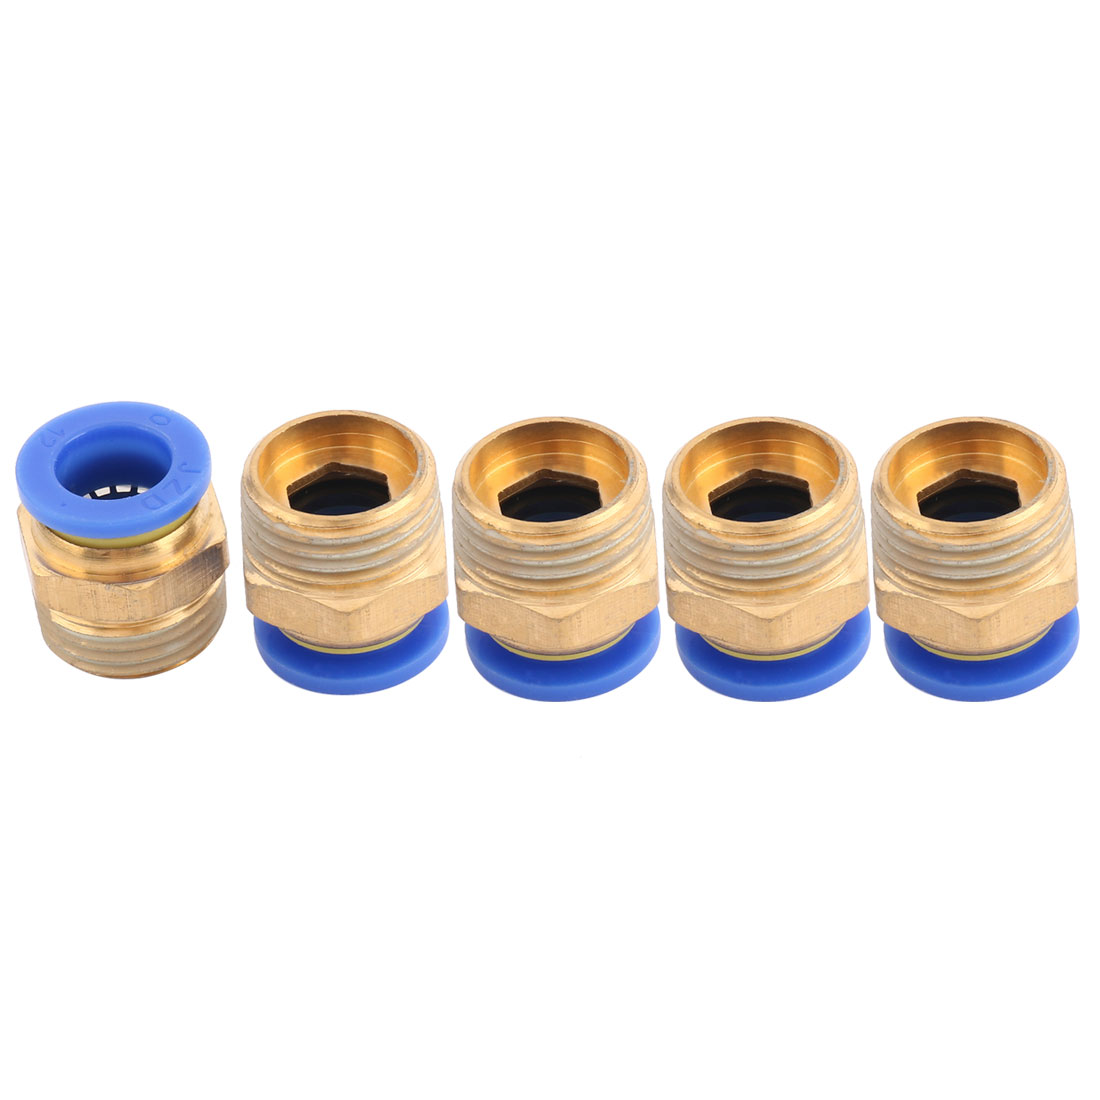 Metal Pneumatic Tube Thread Straight Push Pipe Joint Adaptor Quick Fittings 5pcs